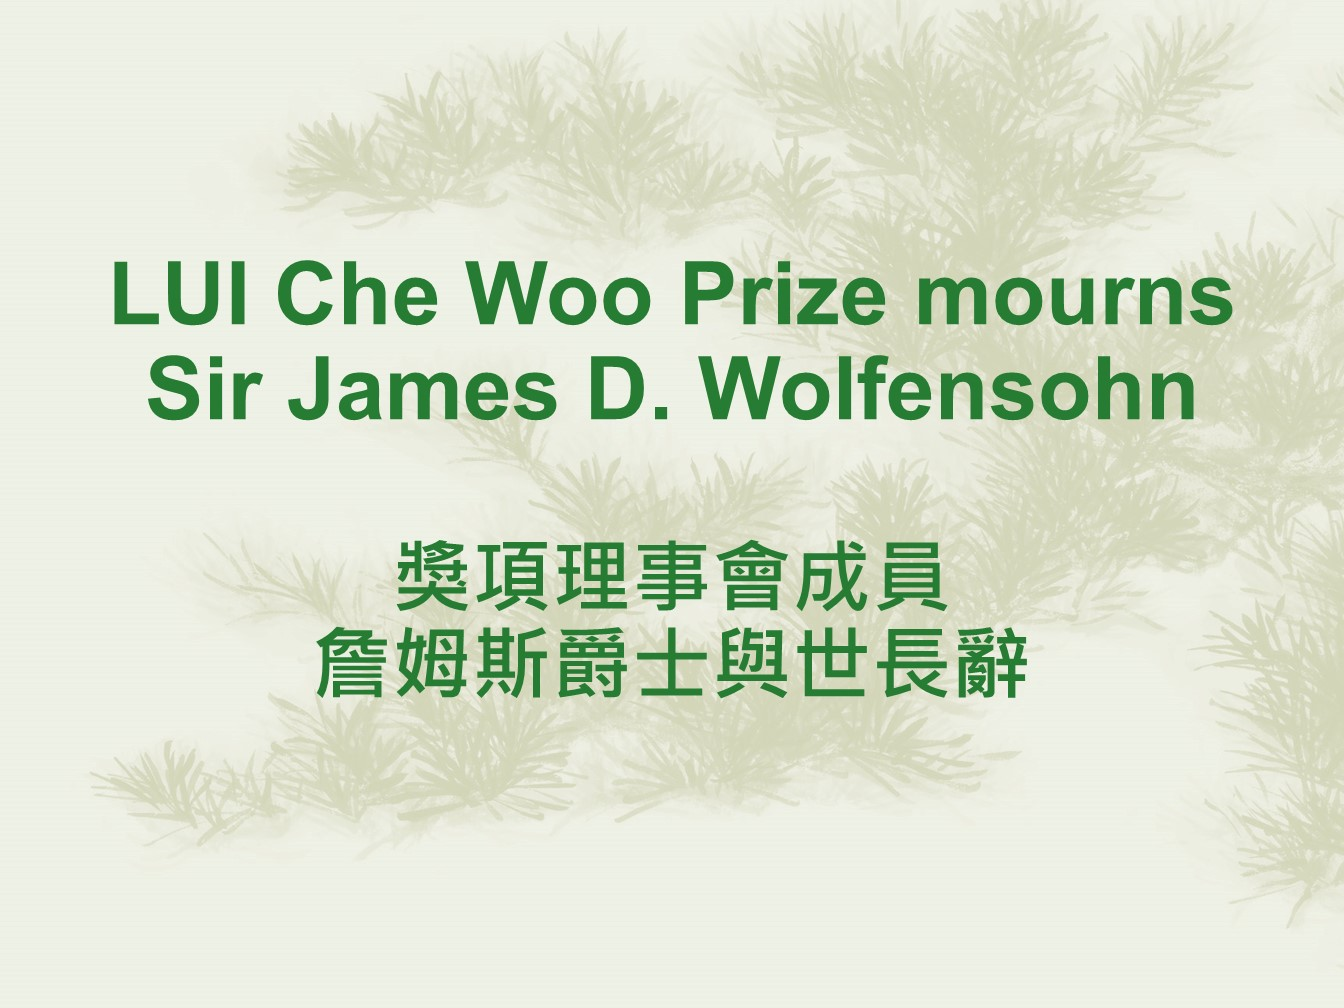 LUI Che Woo Prize mourns Sir James D. Wolfensohn